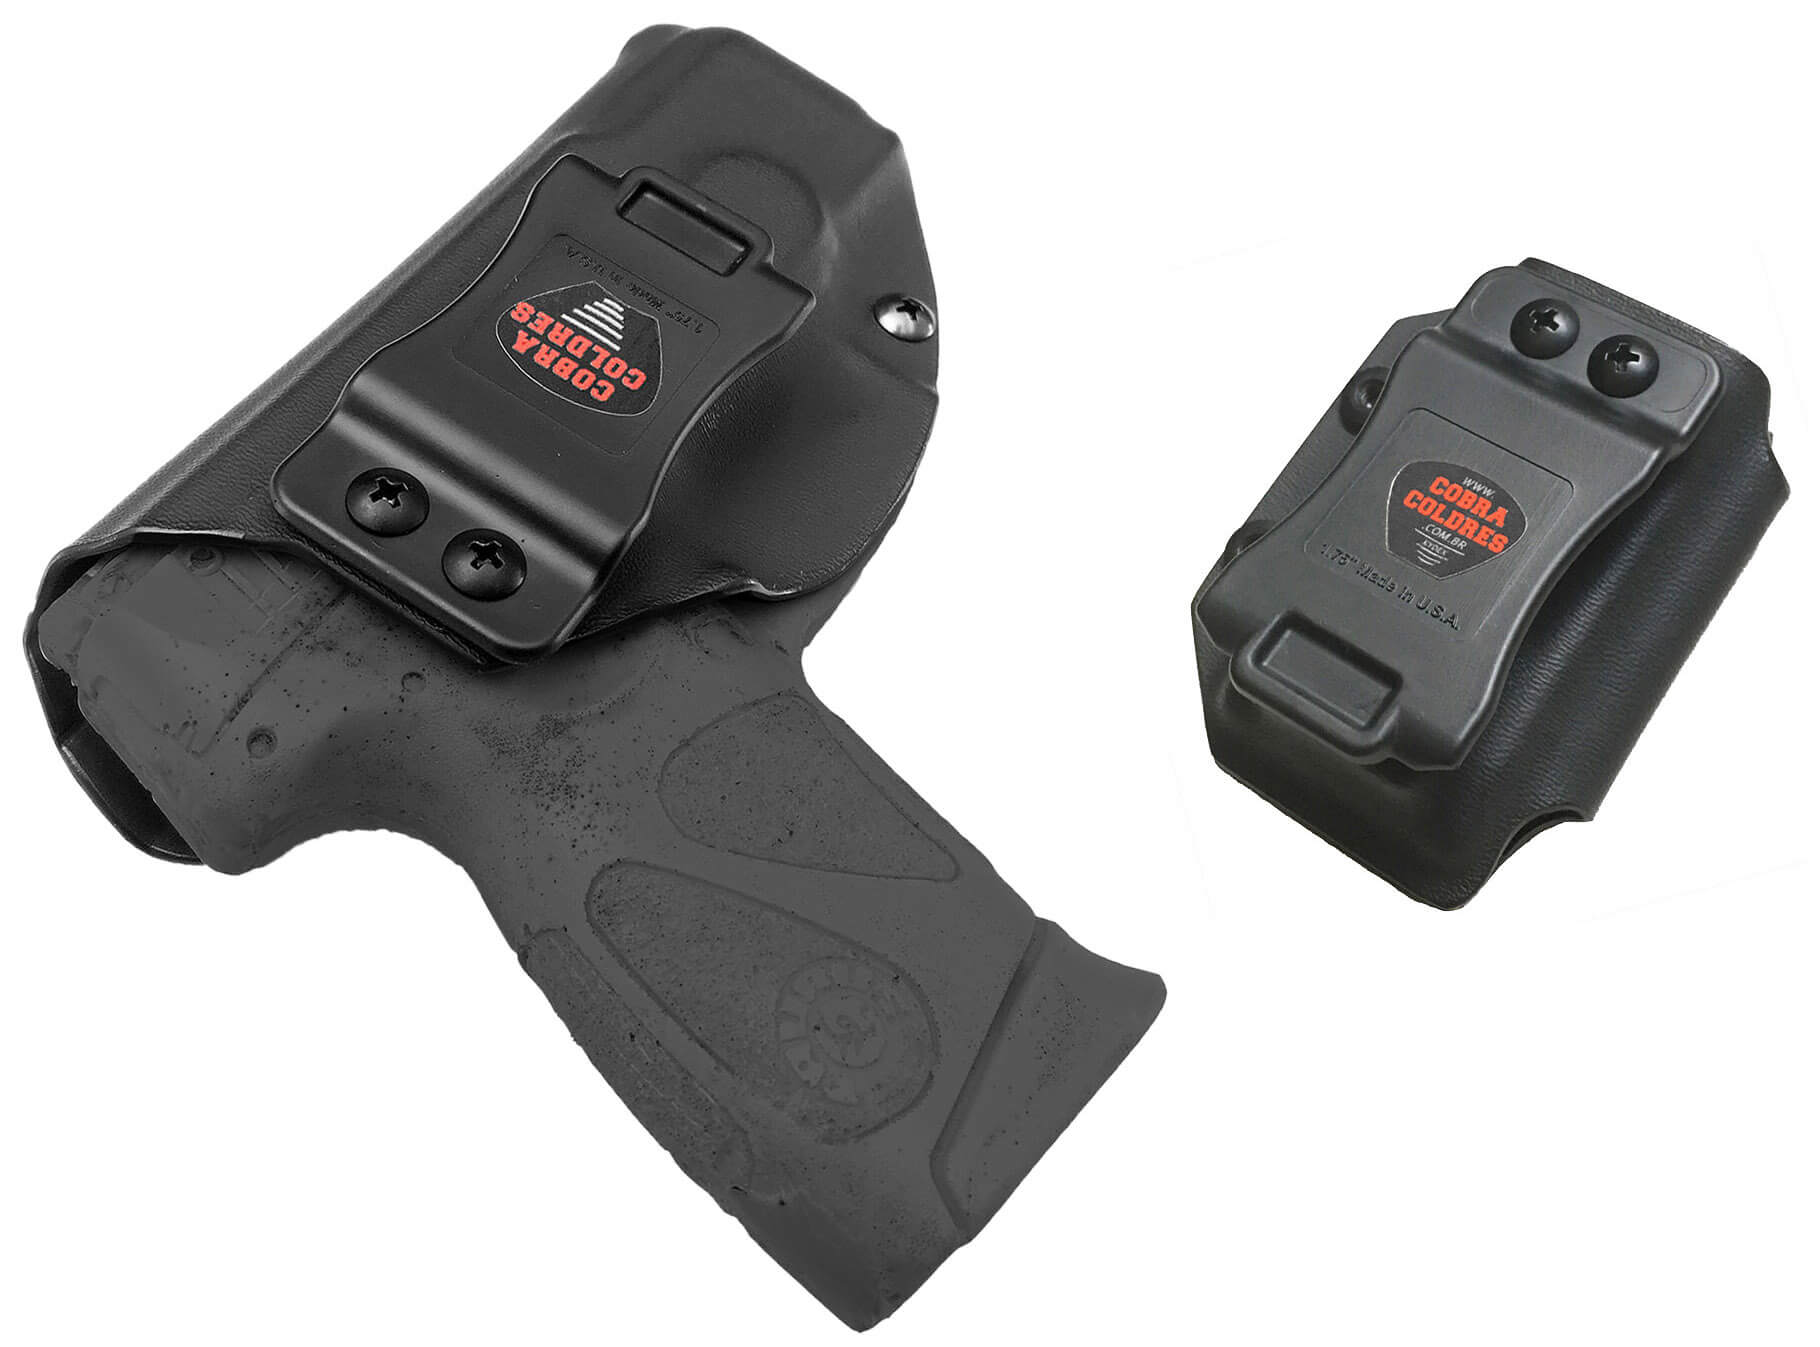 Coldre [G2c] 9mm Kydex Slim + Porta-Carregador Saque Rápido Velado Kydex® 080